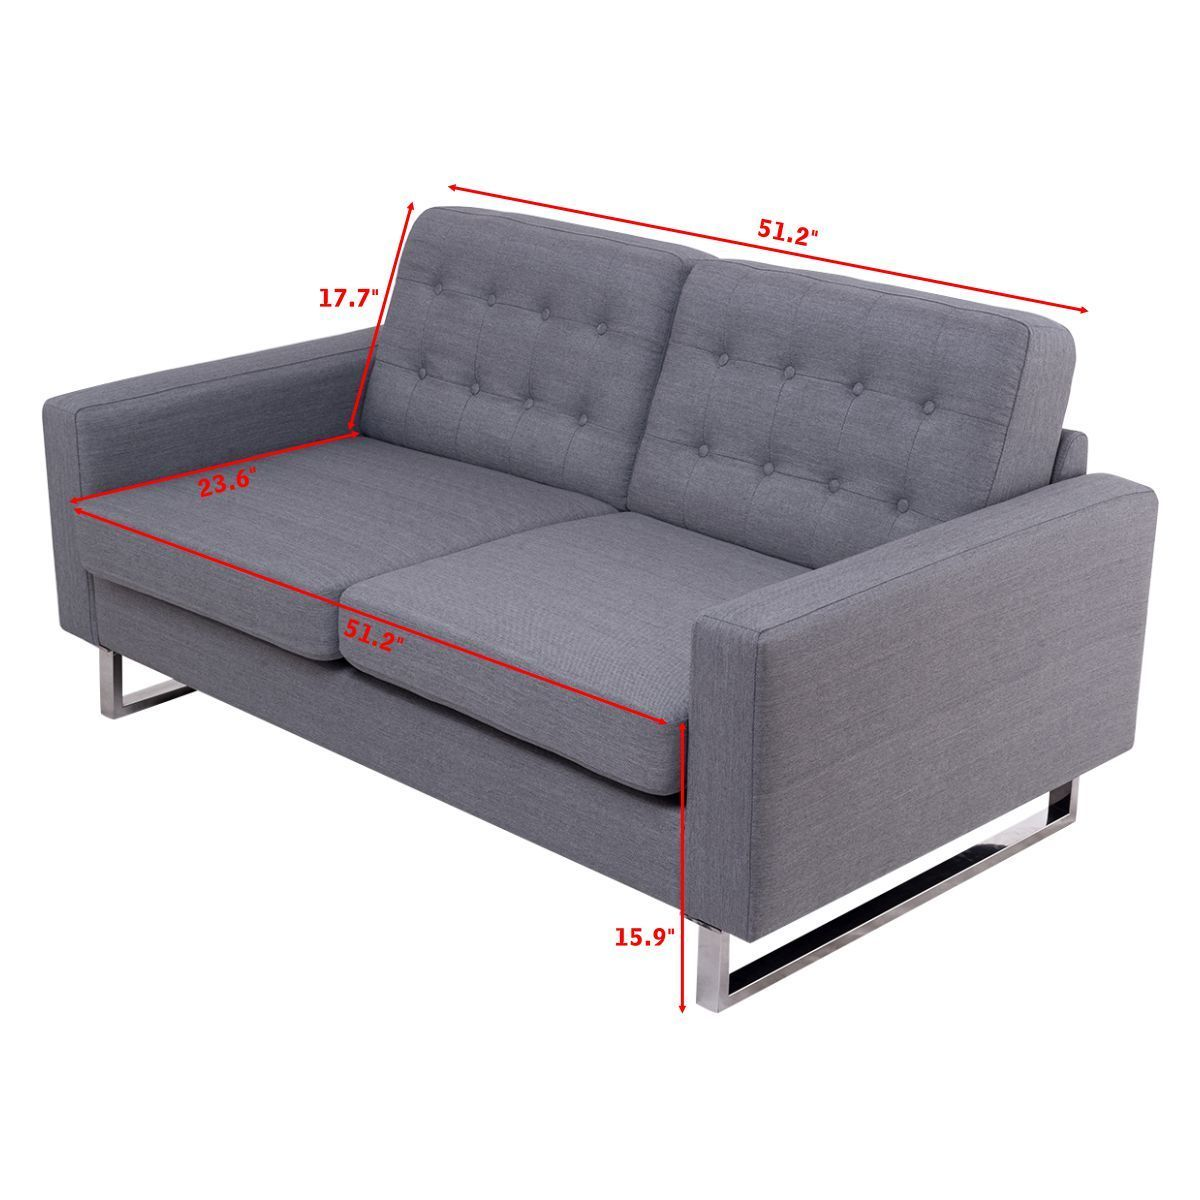 Giantex 2 Seat Sofa Couch Home Office Modern Loveseat Fabric Upholstered  Tufted Luxury Sofas Living Room Furniture